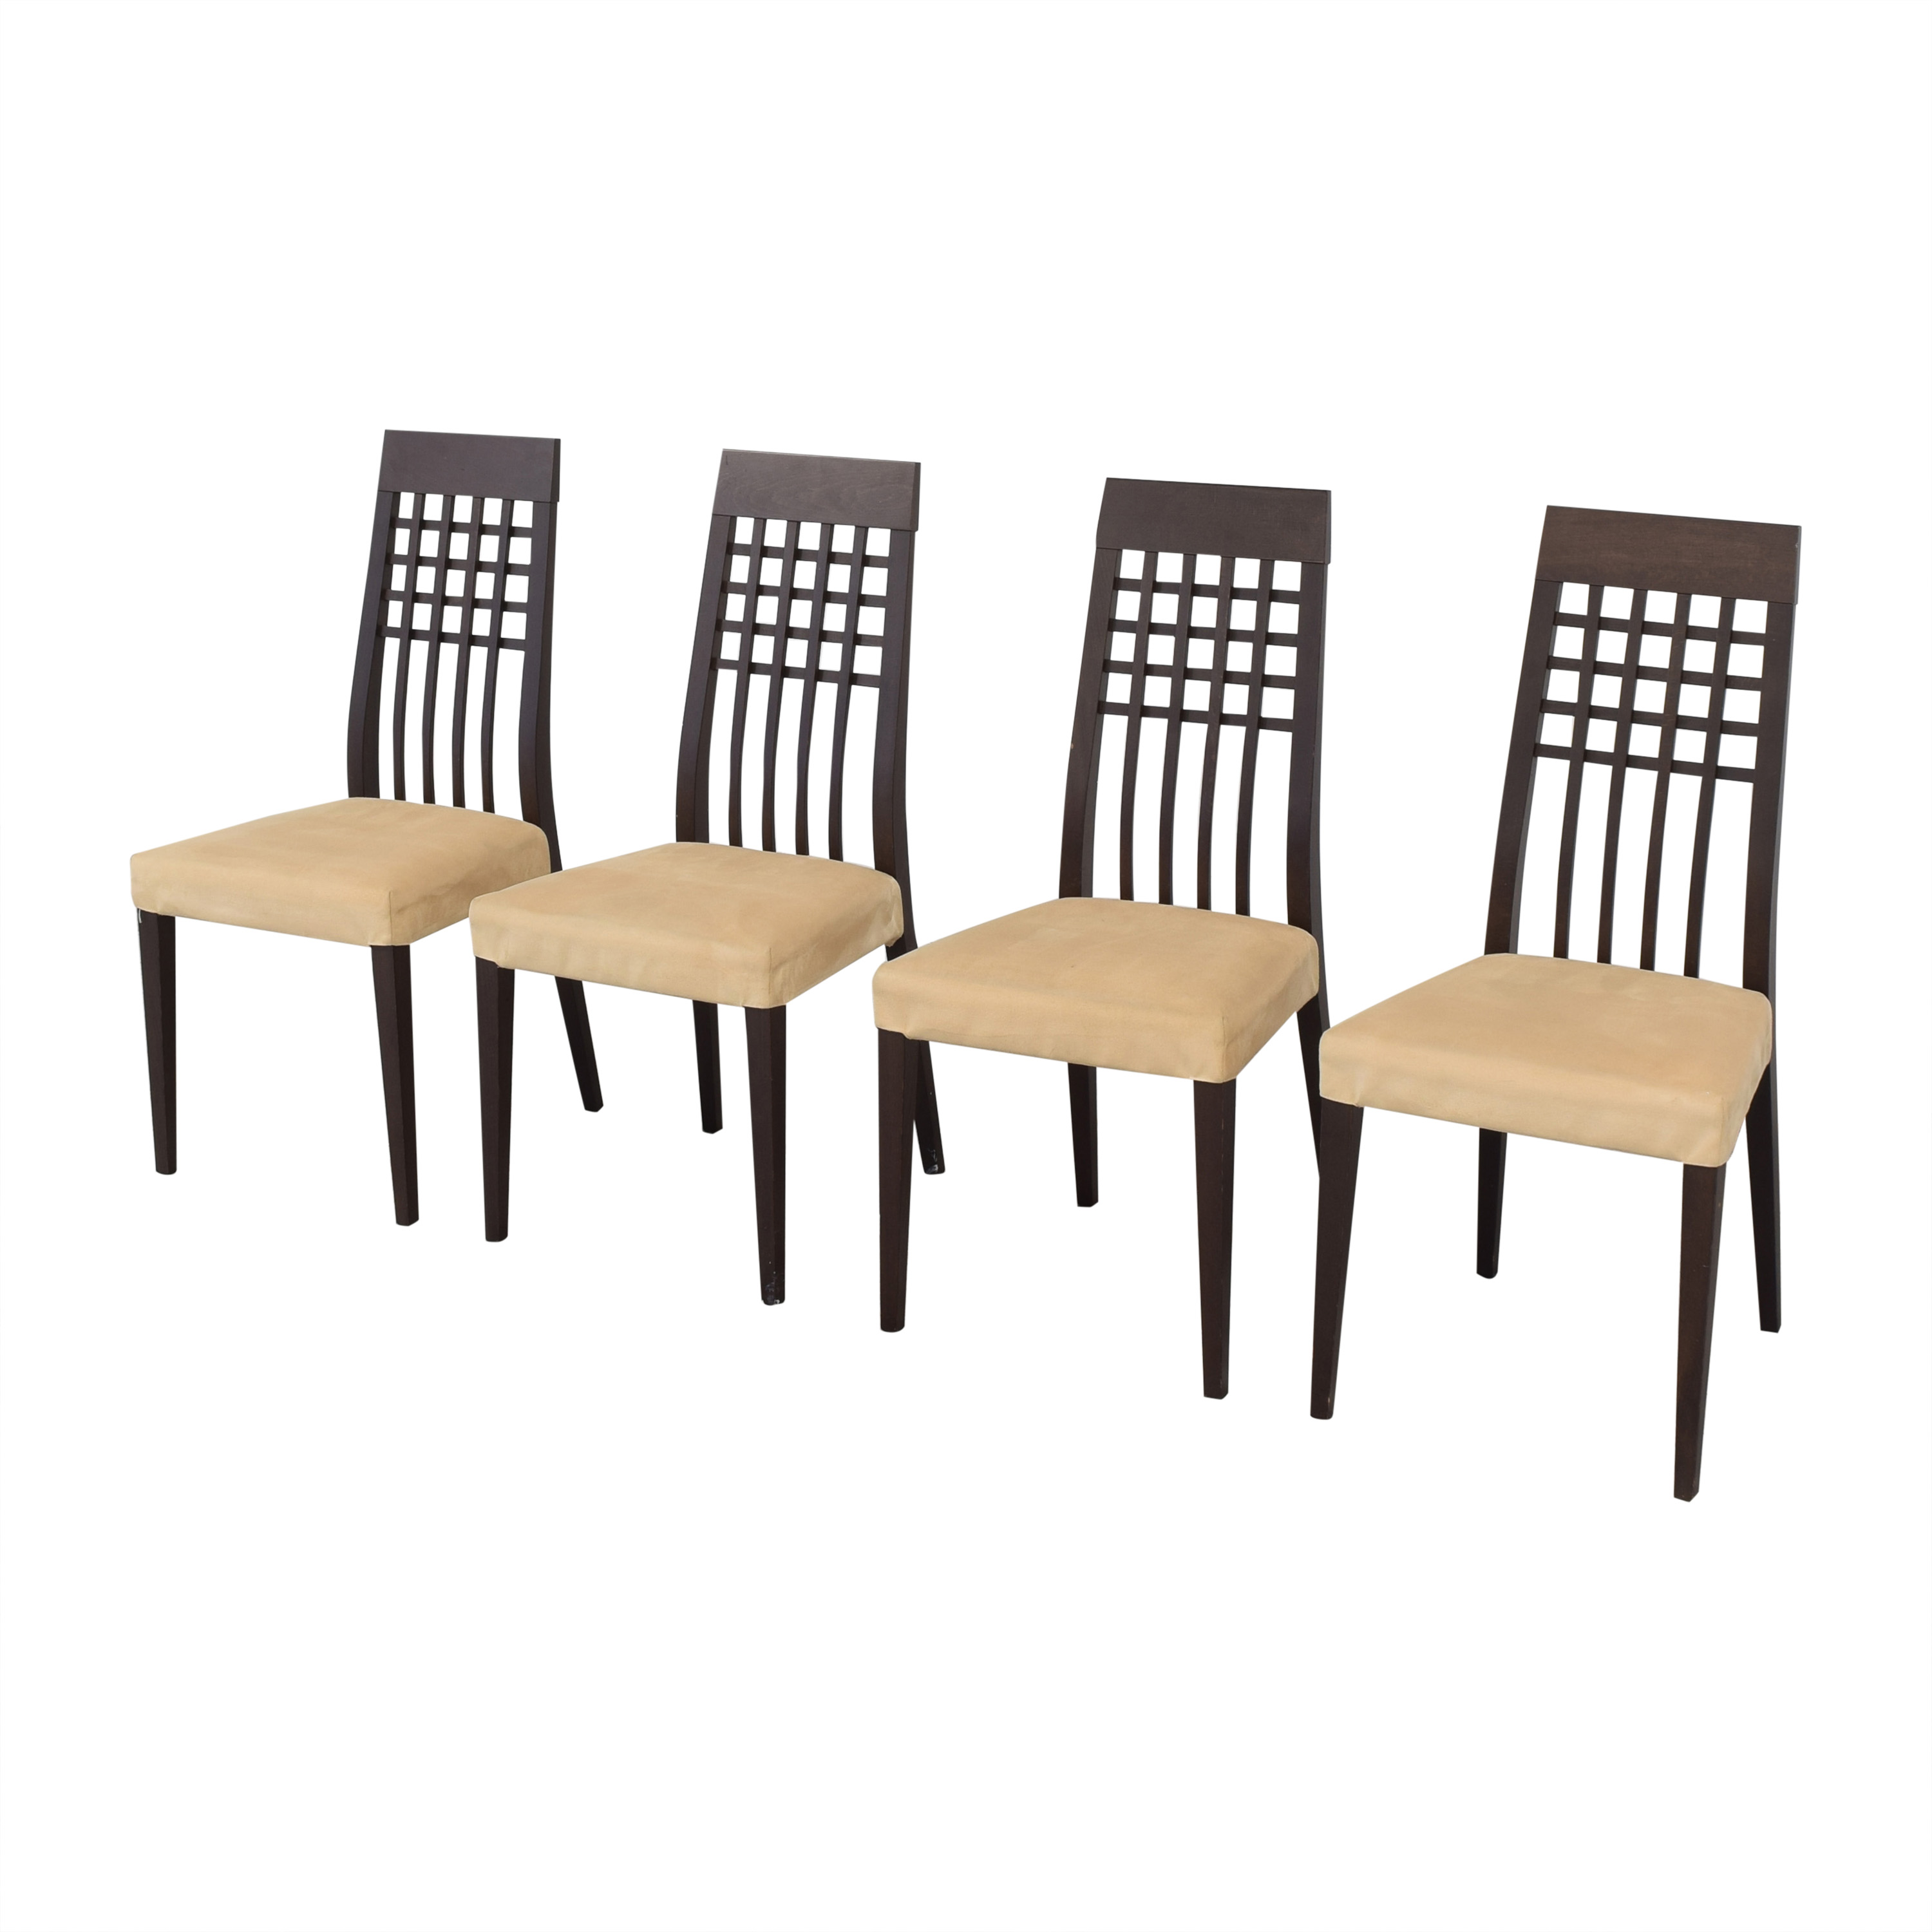 Calligaris Calligaris Upholstered Dining Chairs price